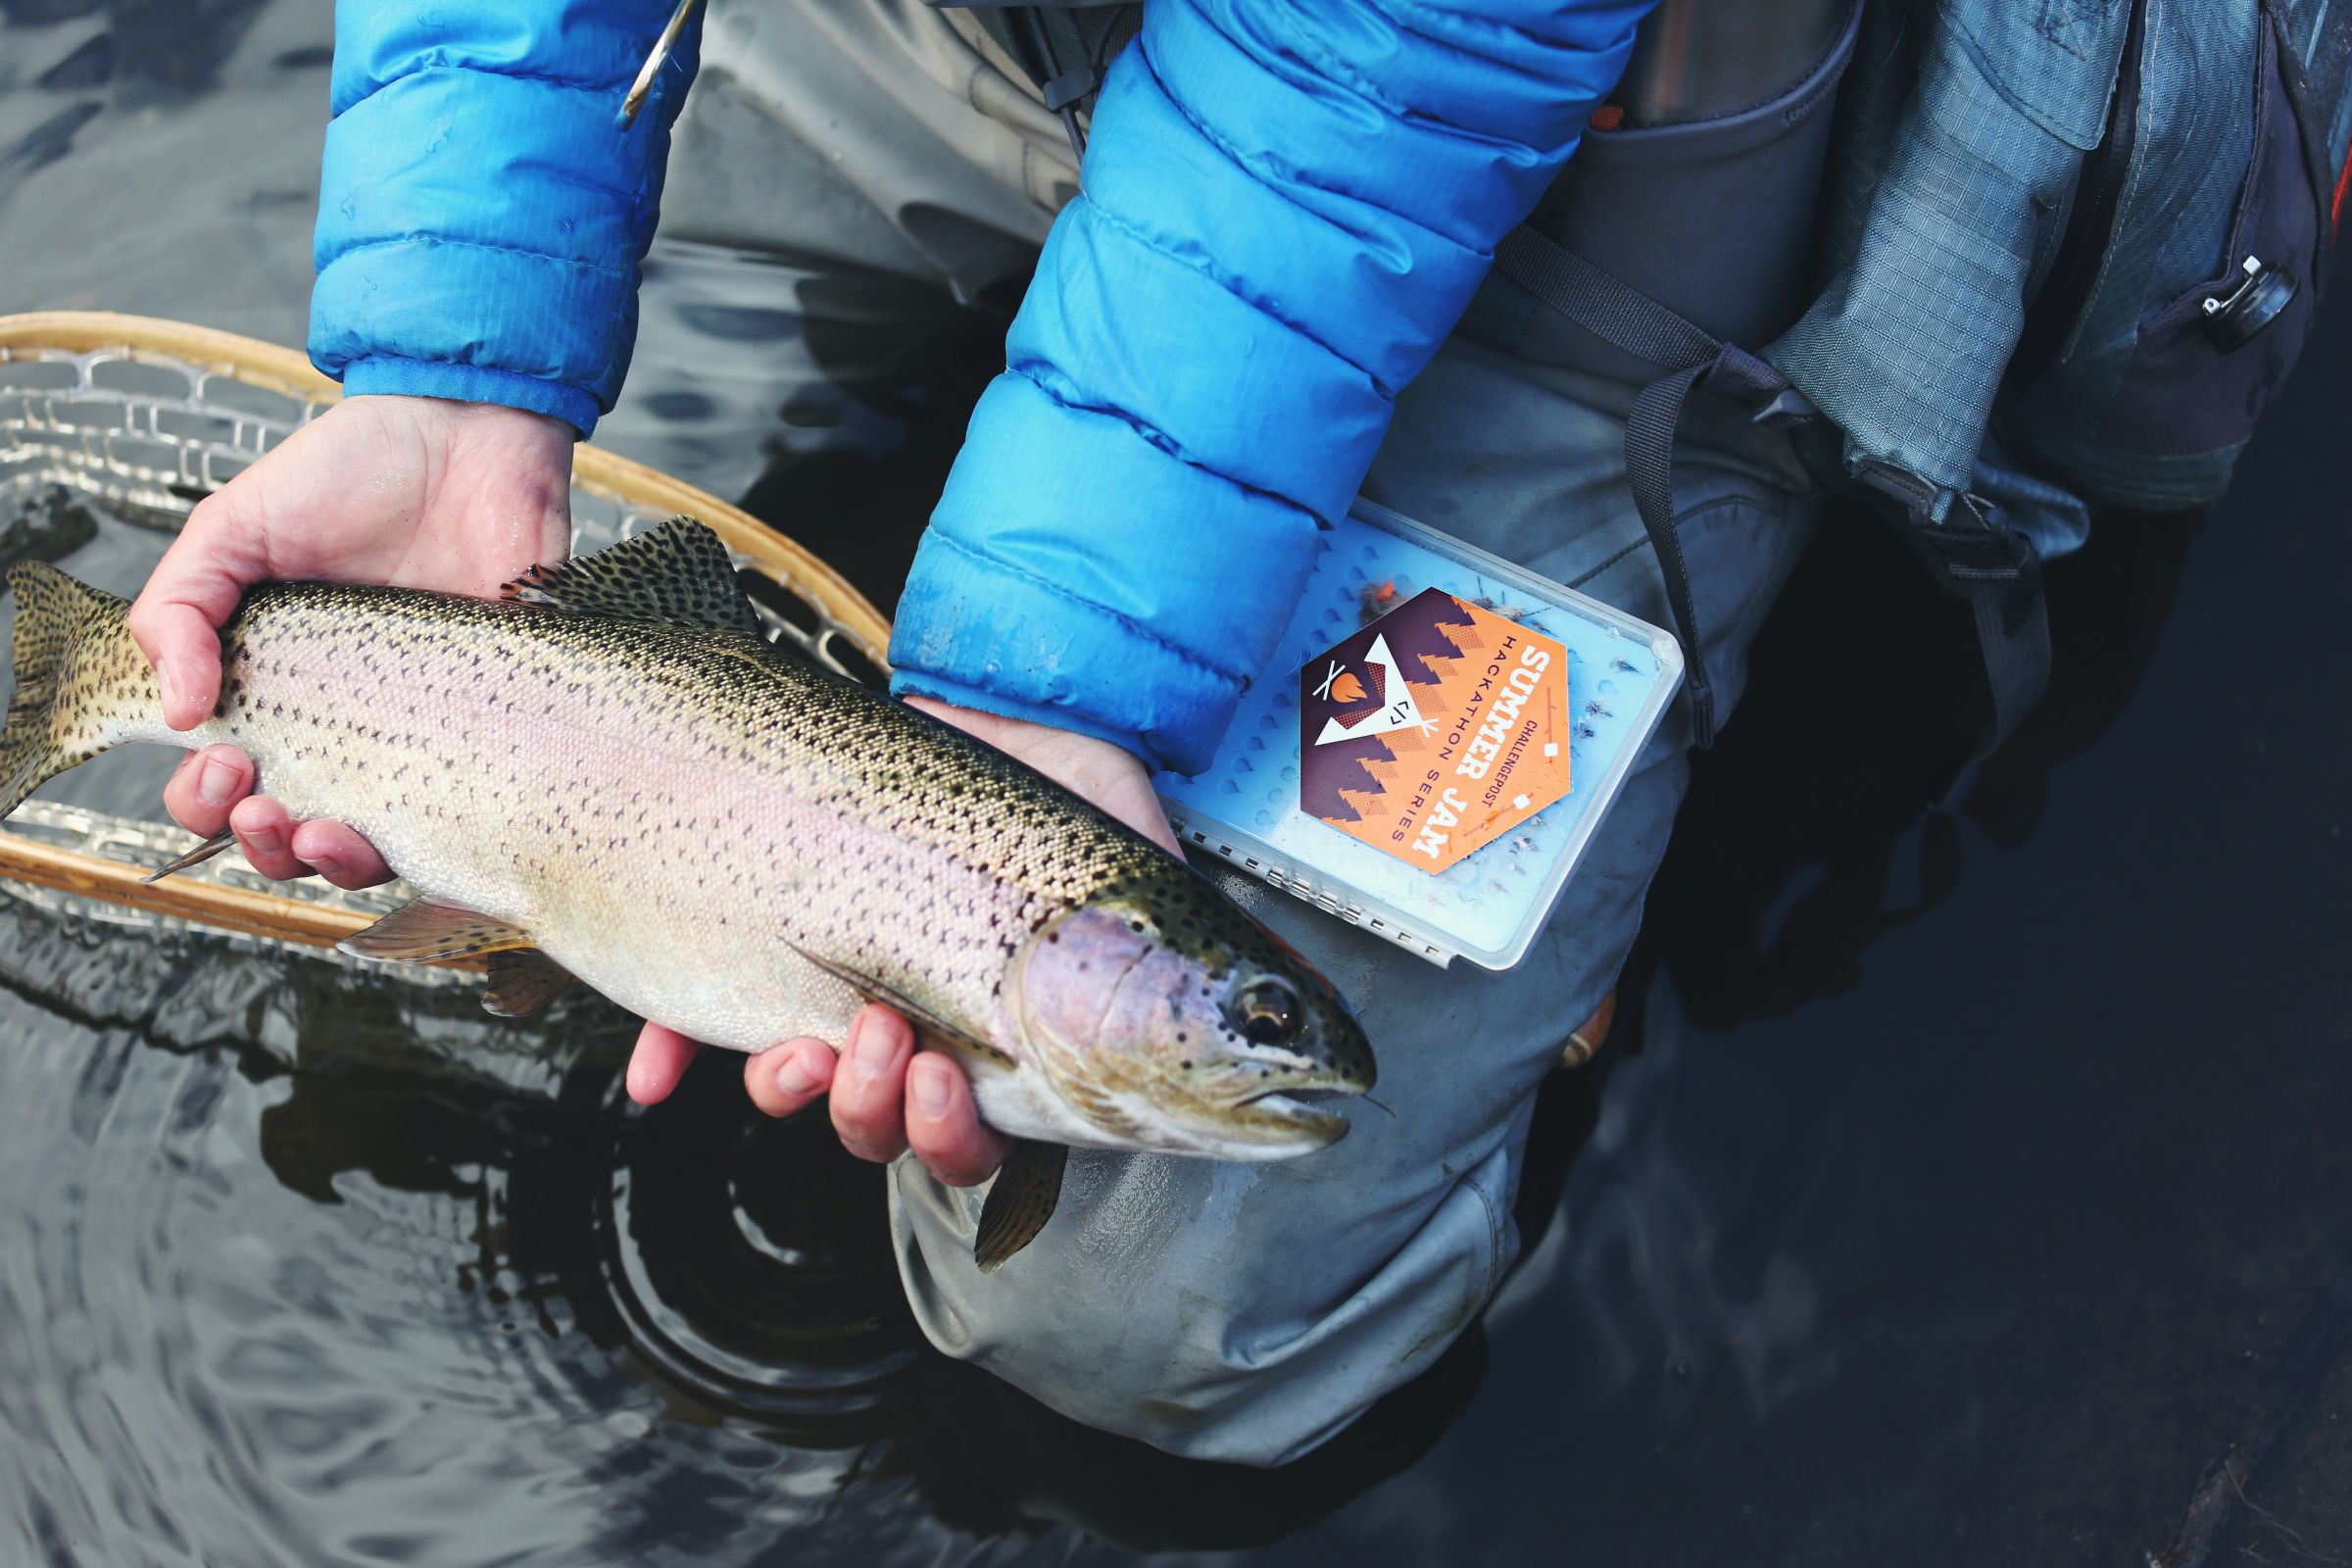 Person wearing a blue down jacket holding a gray and beige fish